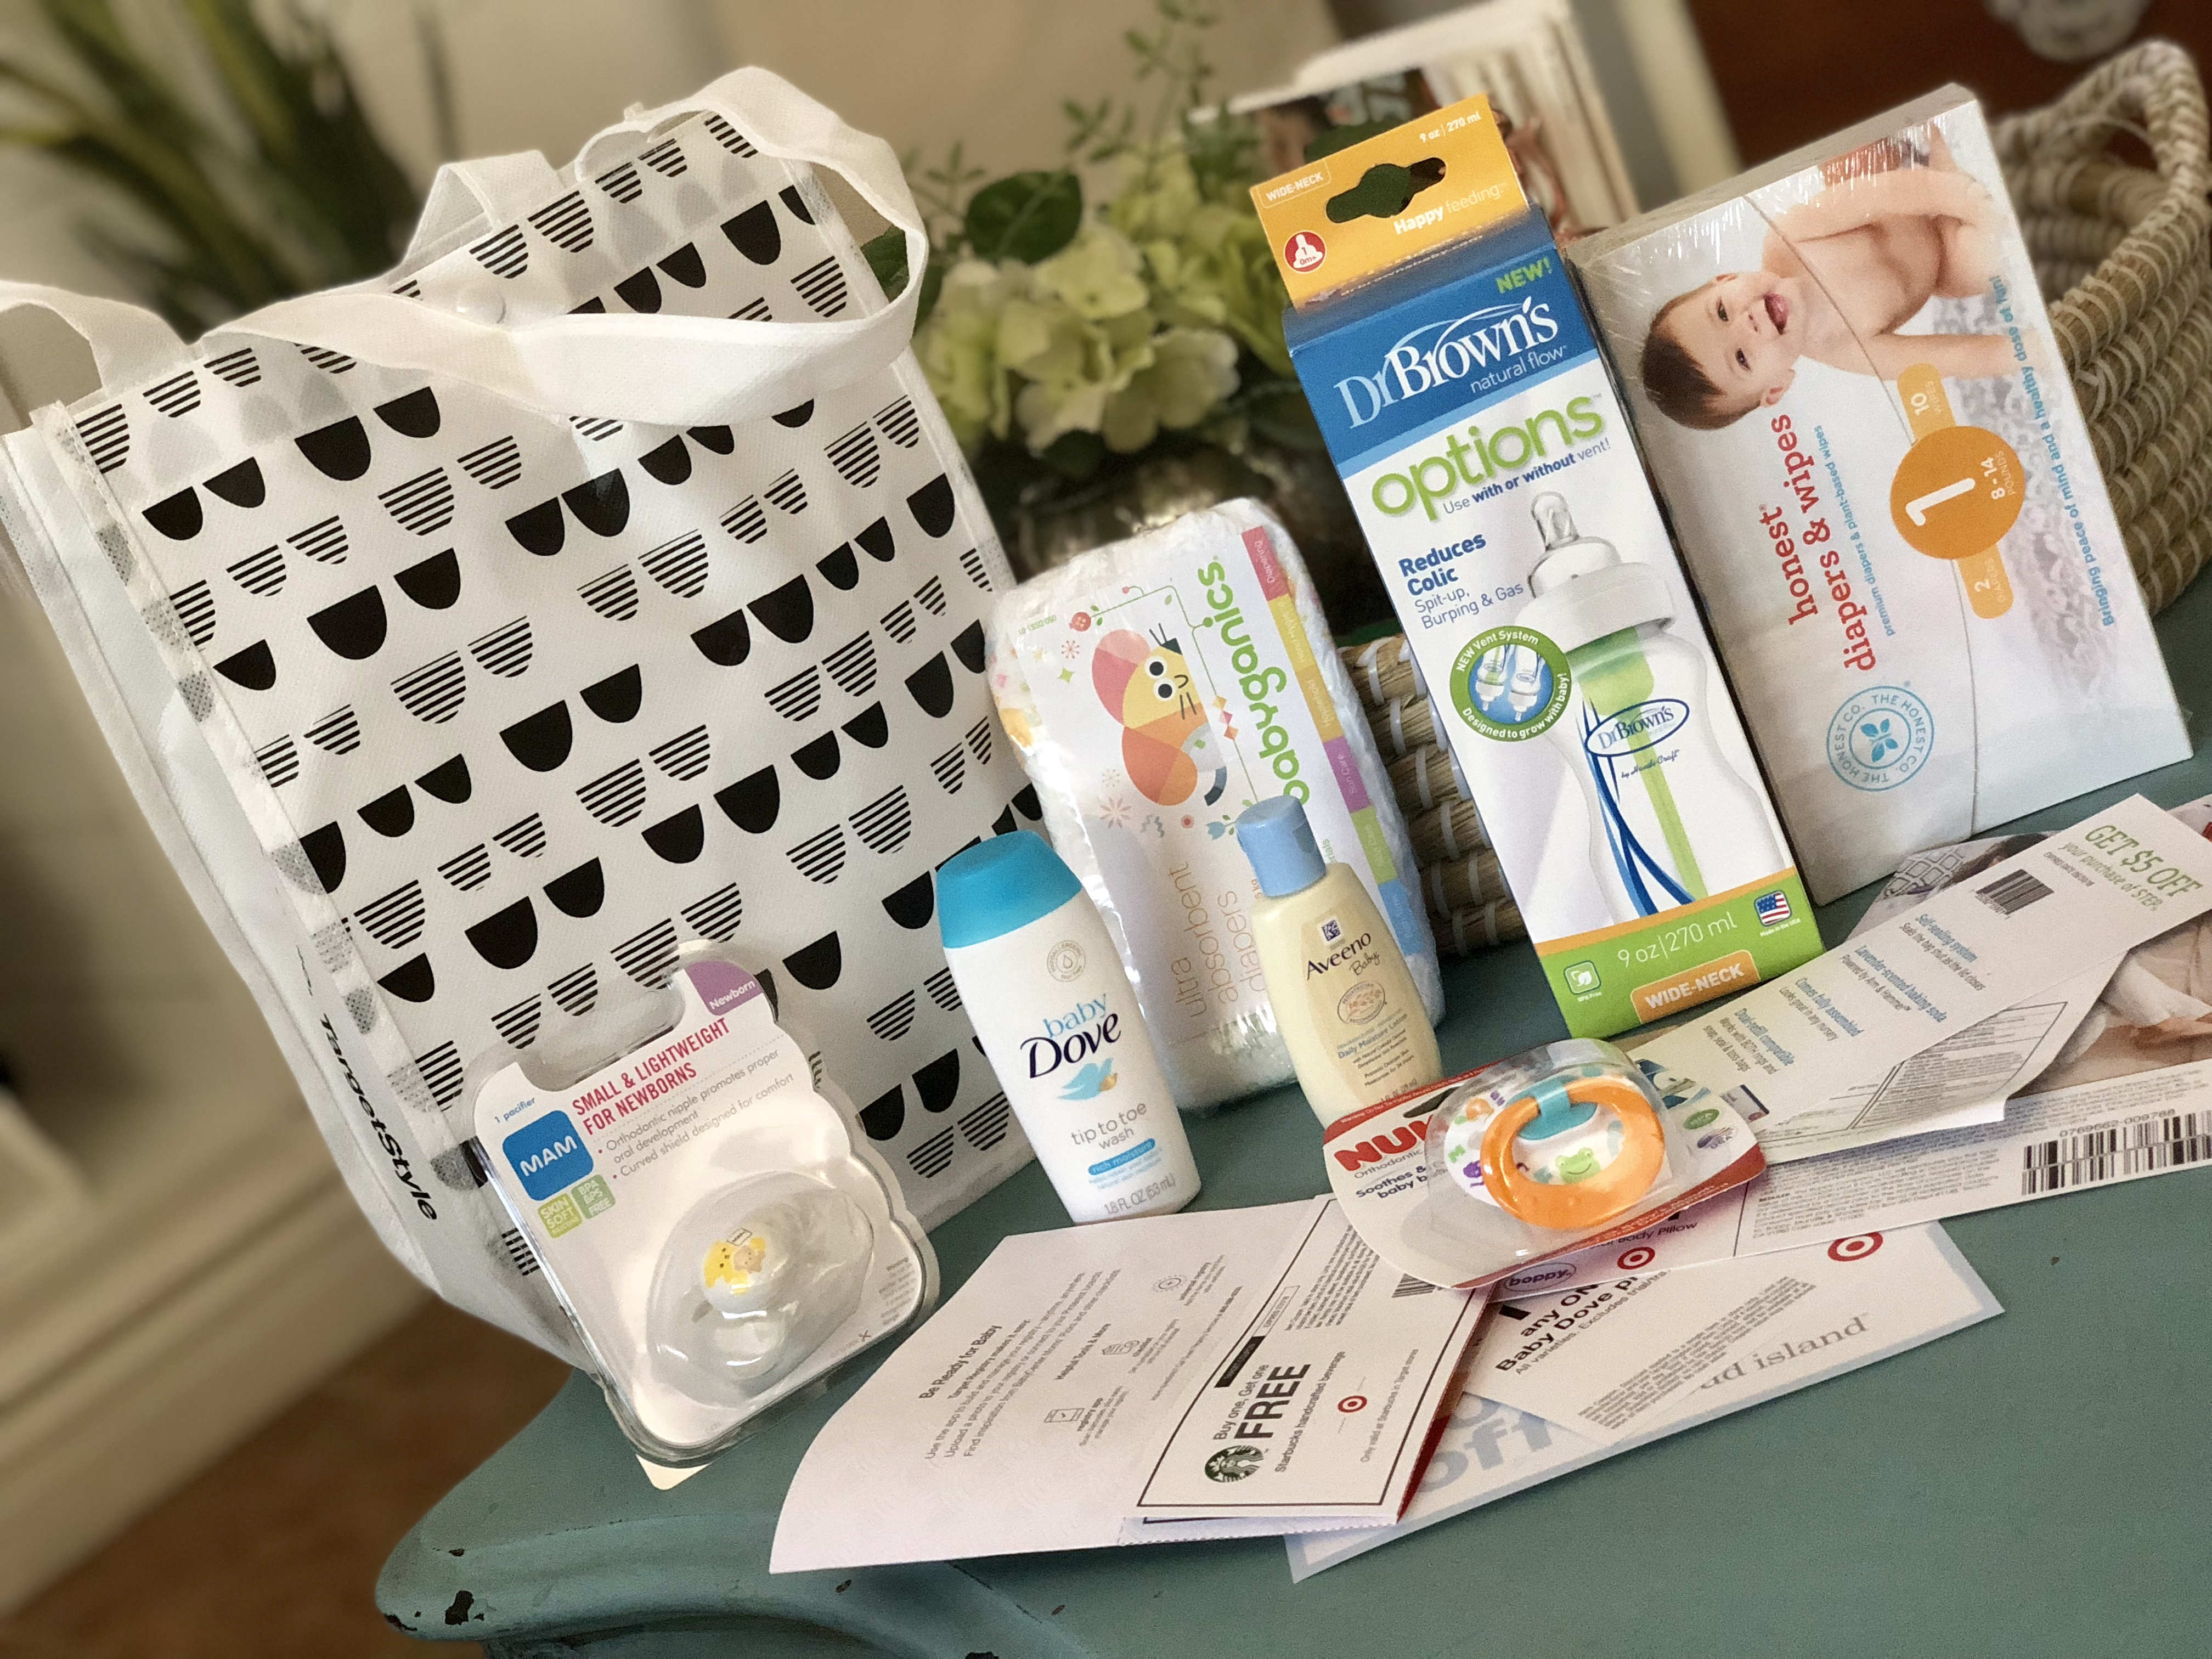 Get a free Target Baby Bag with a baby registry – items we received in our free bag